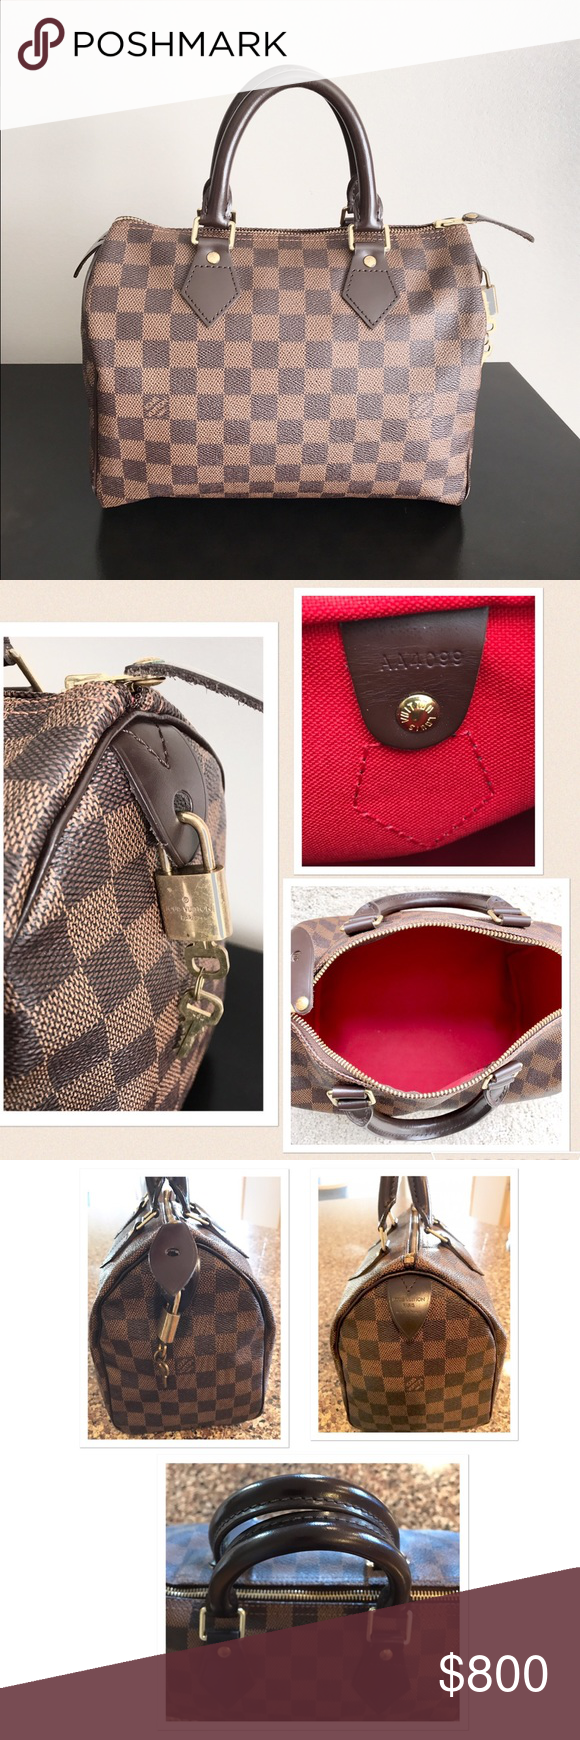 100 Authentic Mini Louis Vuitton Made In France Has No Date >> Louis Vuitton Speedy 25 Damier Ebene Date Code Is Aa4099